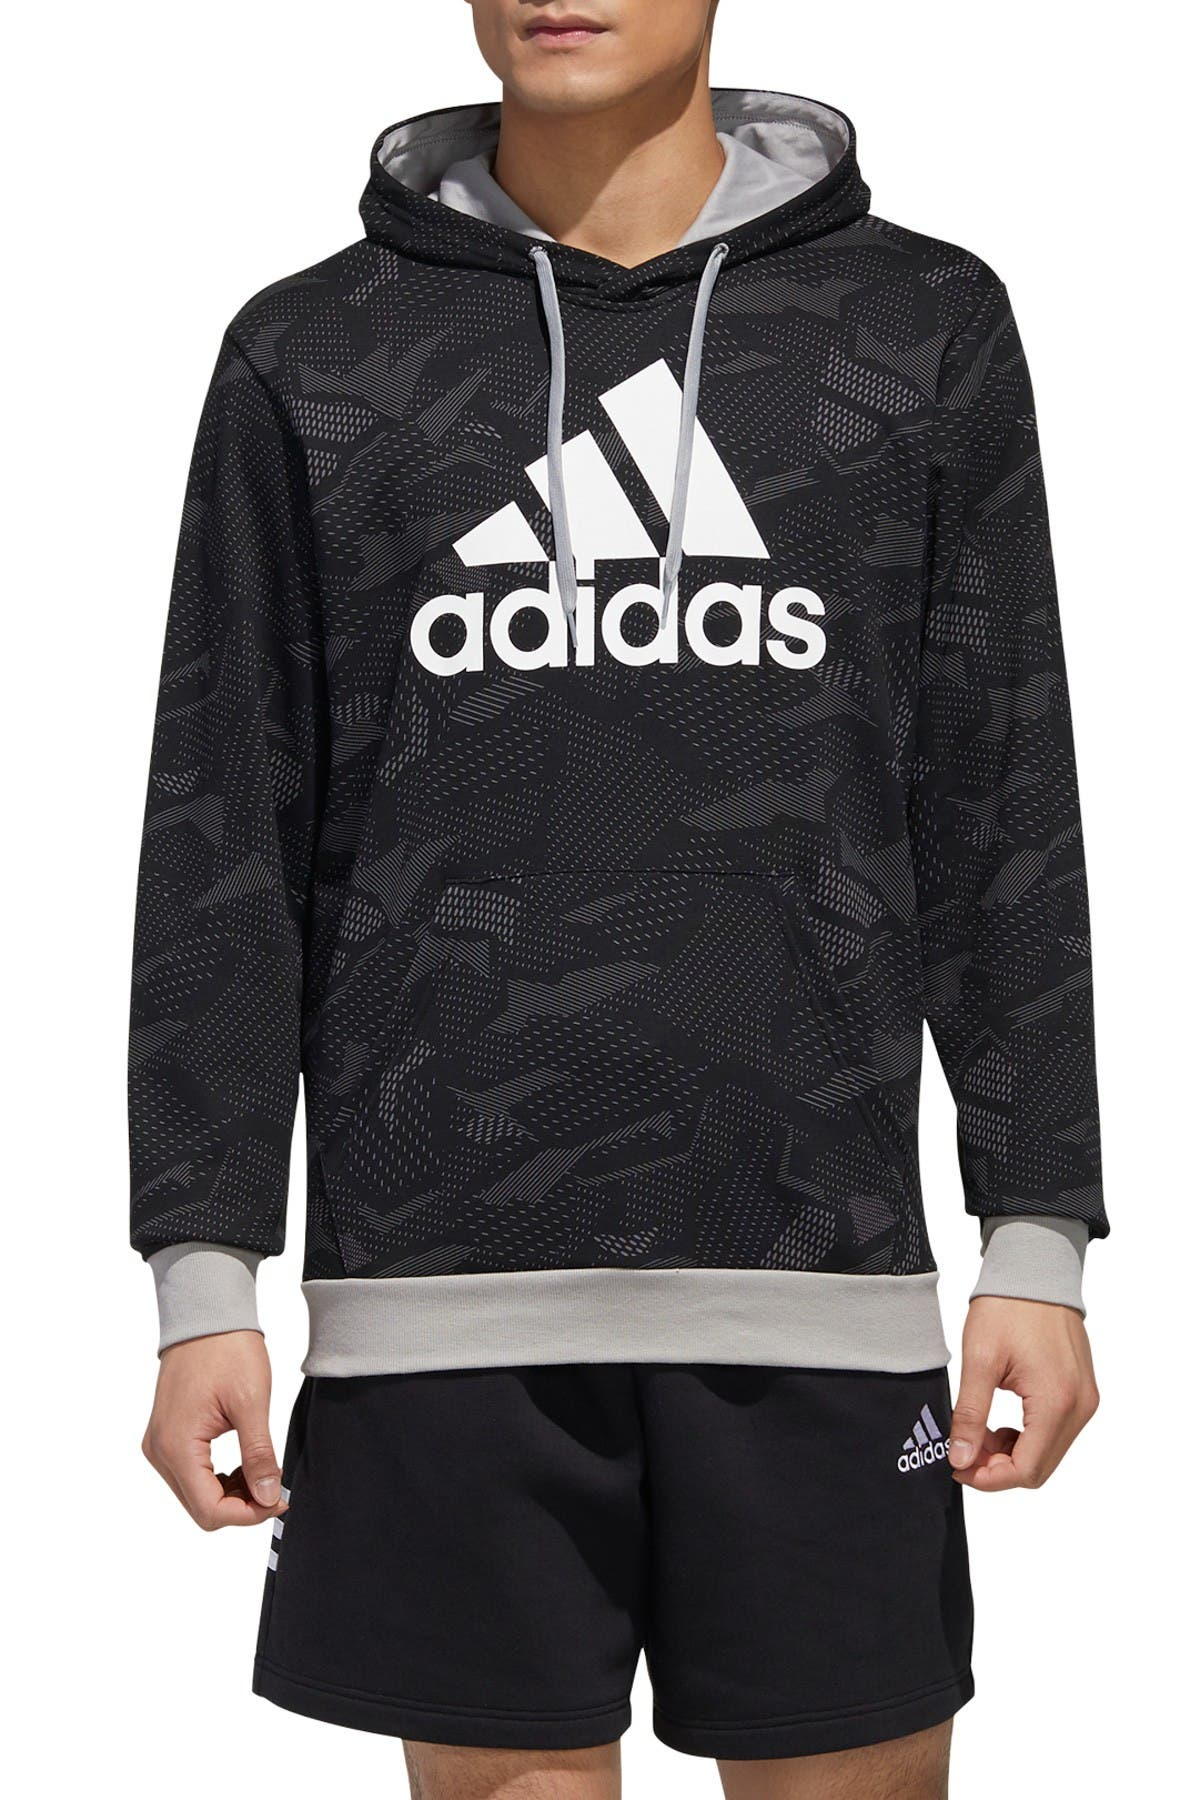 Image of adidas Essentials Allover Print Hoodie